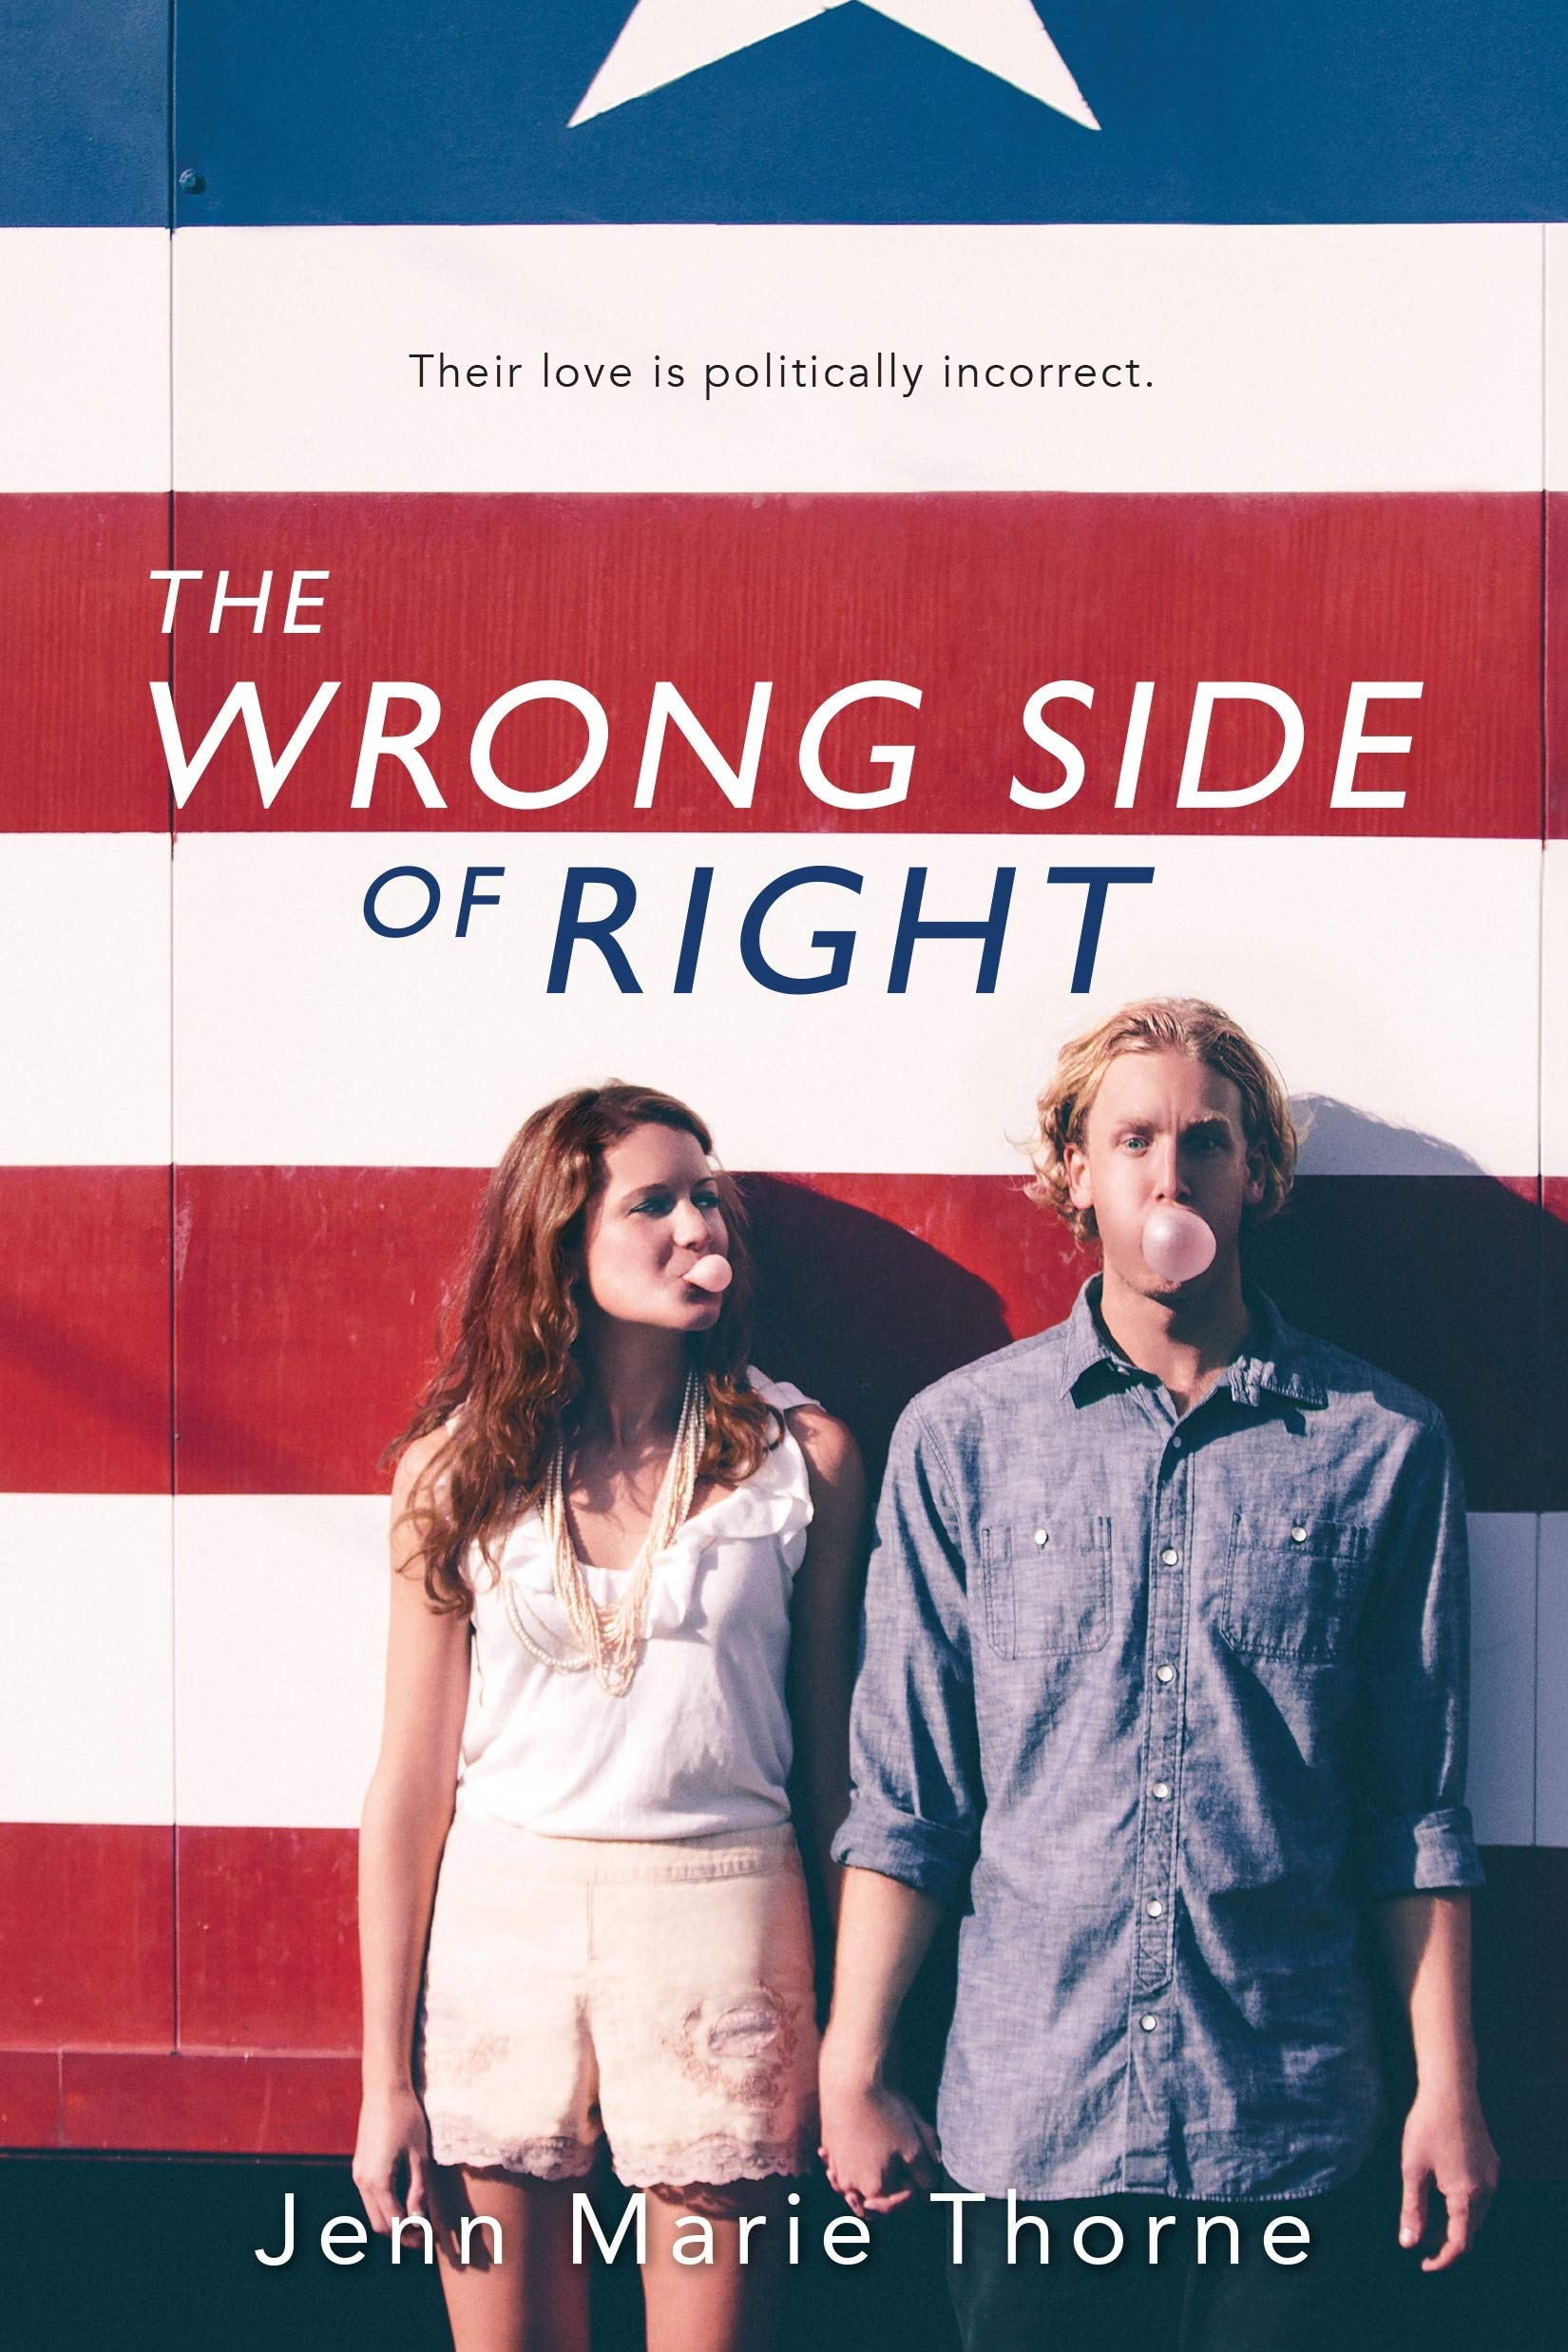 Amazon.com: The Wrong Side of Right (9780147509840): Thorne, Jenn Marie:  Books